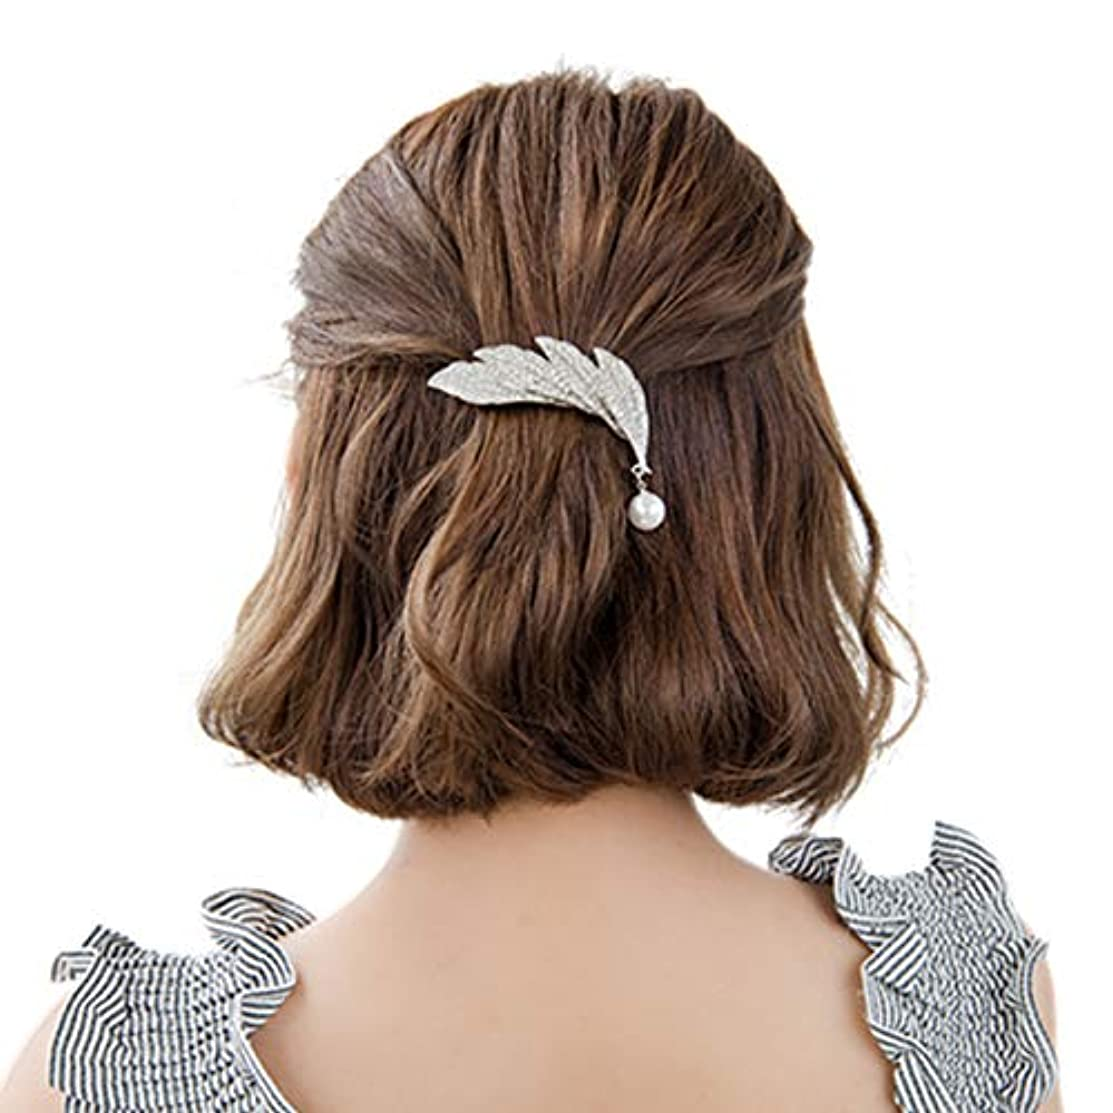 Wildy CCA Leaf Hairpin- Elegant Shiny Silver-Crystal Artificial Pearl-Hair Pendant- Metal Jewelry- Women's Hair